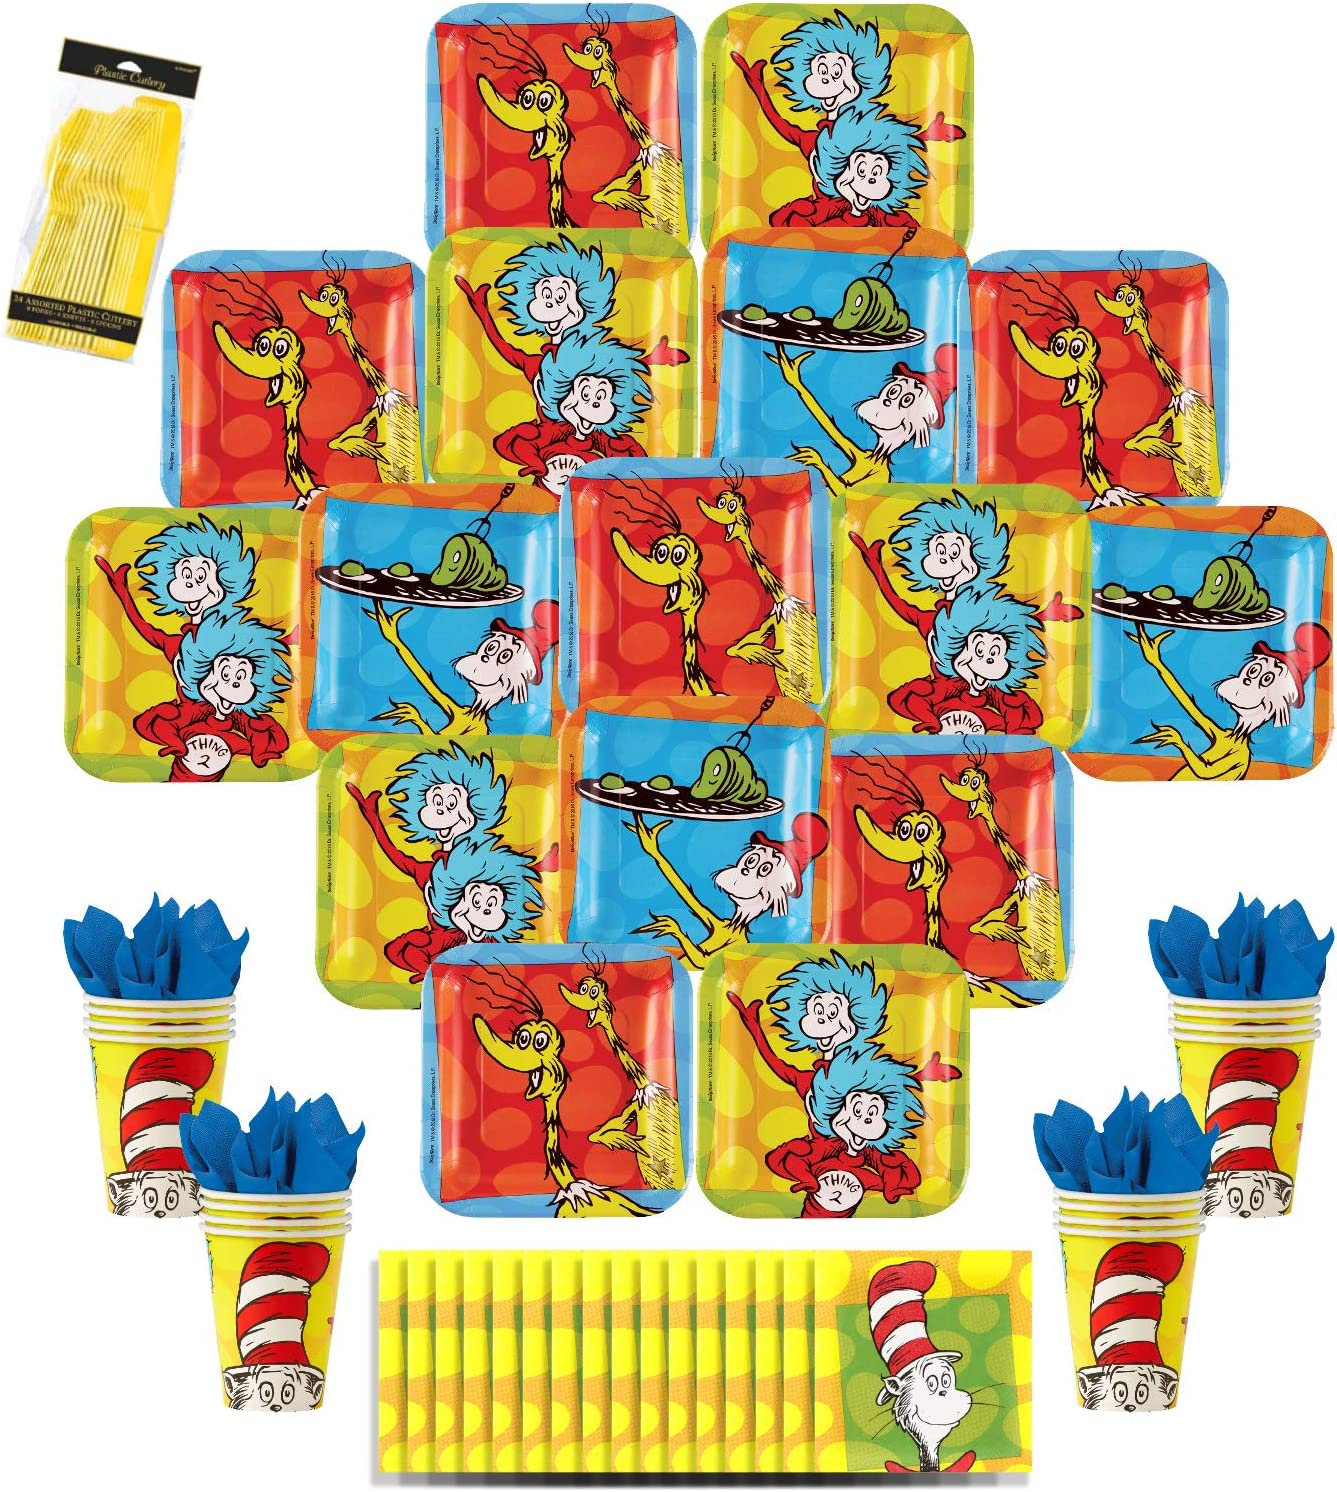 Dr. Seuss Party Pack Seats 16 - Napkins, Plates, Cups, & Cutlery - Party Supplies Decorations, Standard Party Pack